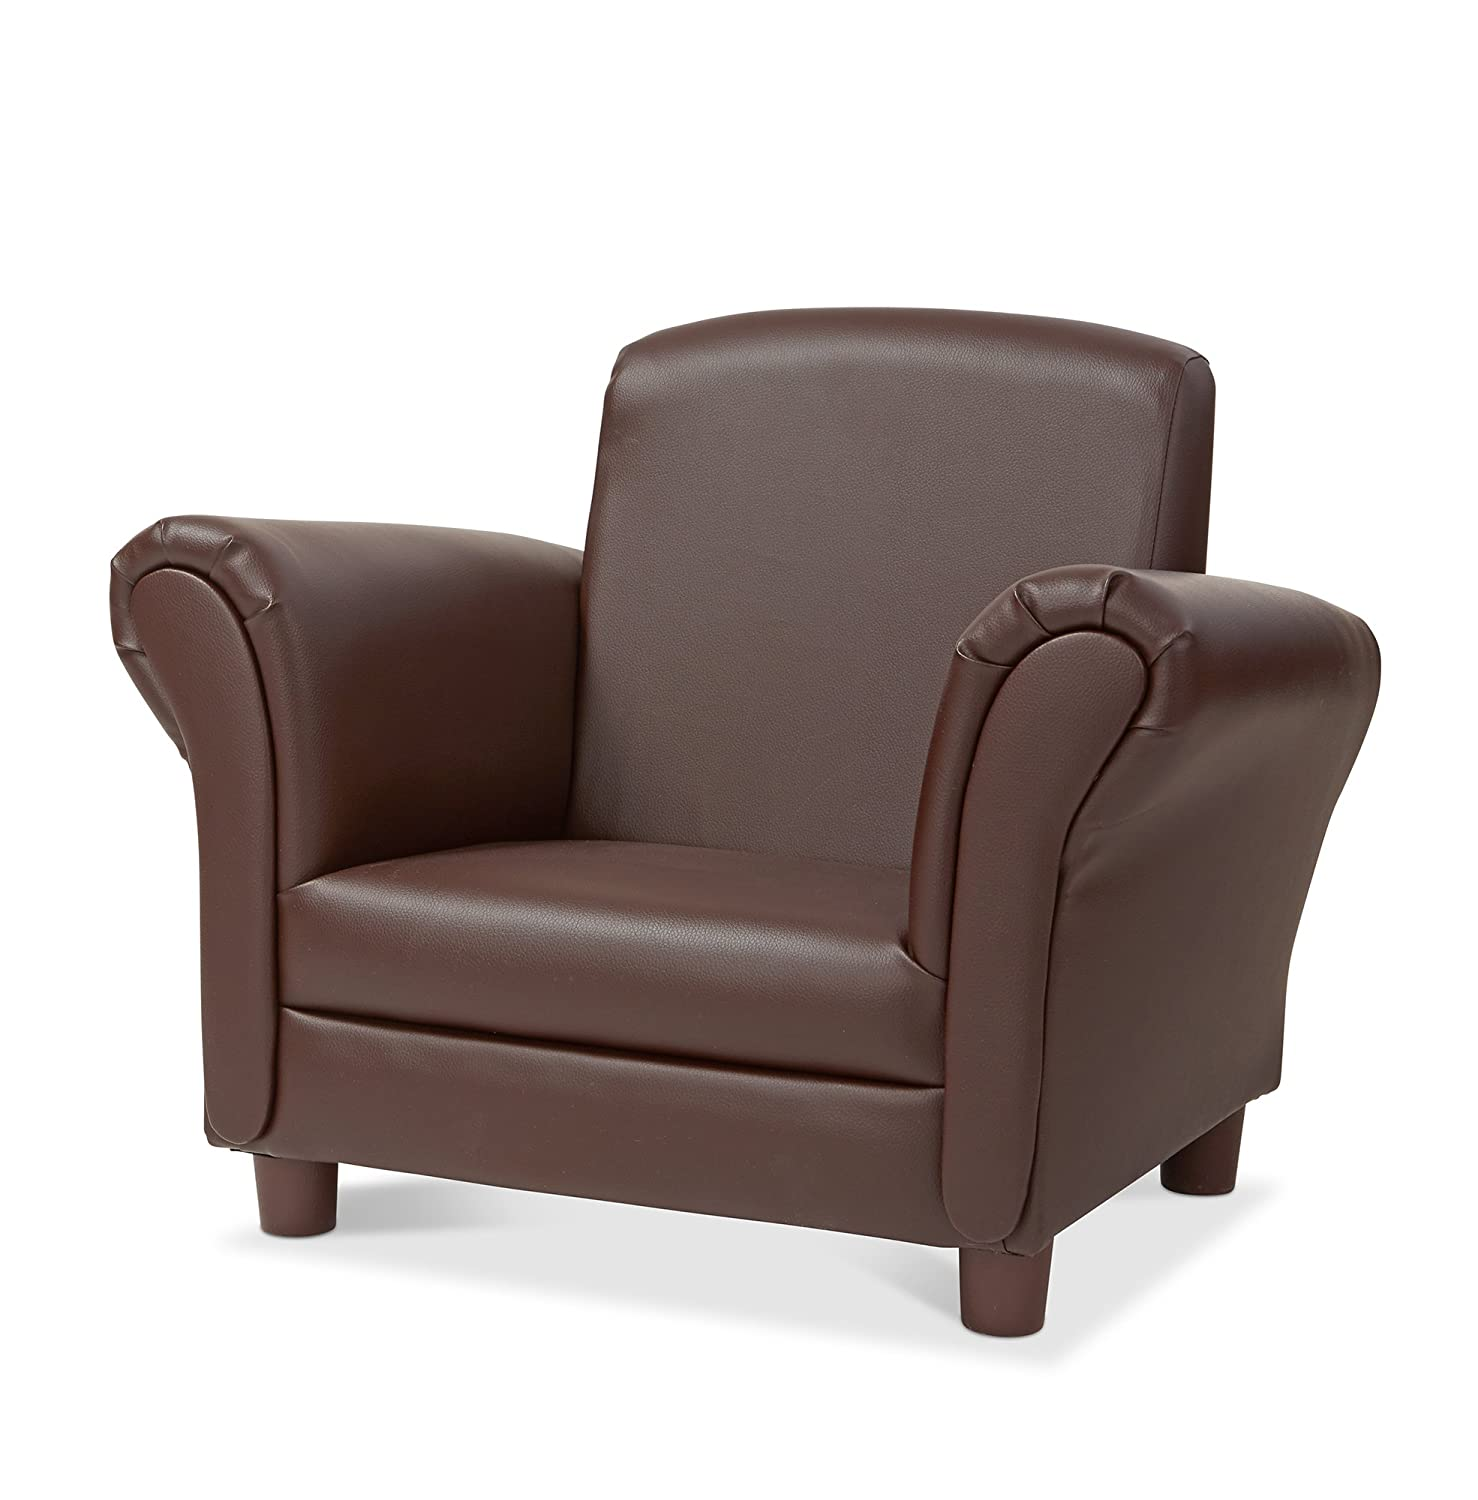 Melissa & Doug Child's Armchair - Coffee Faux Leather Children's Furniture Melissa and Doug 30235